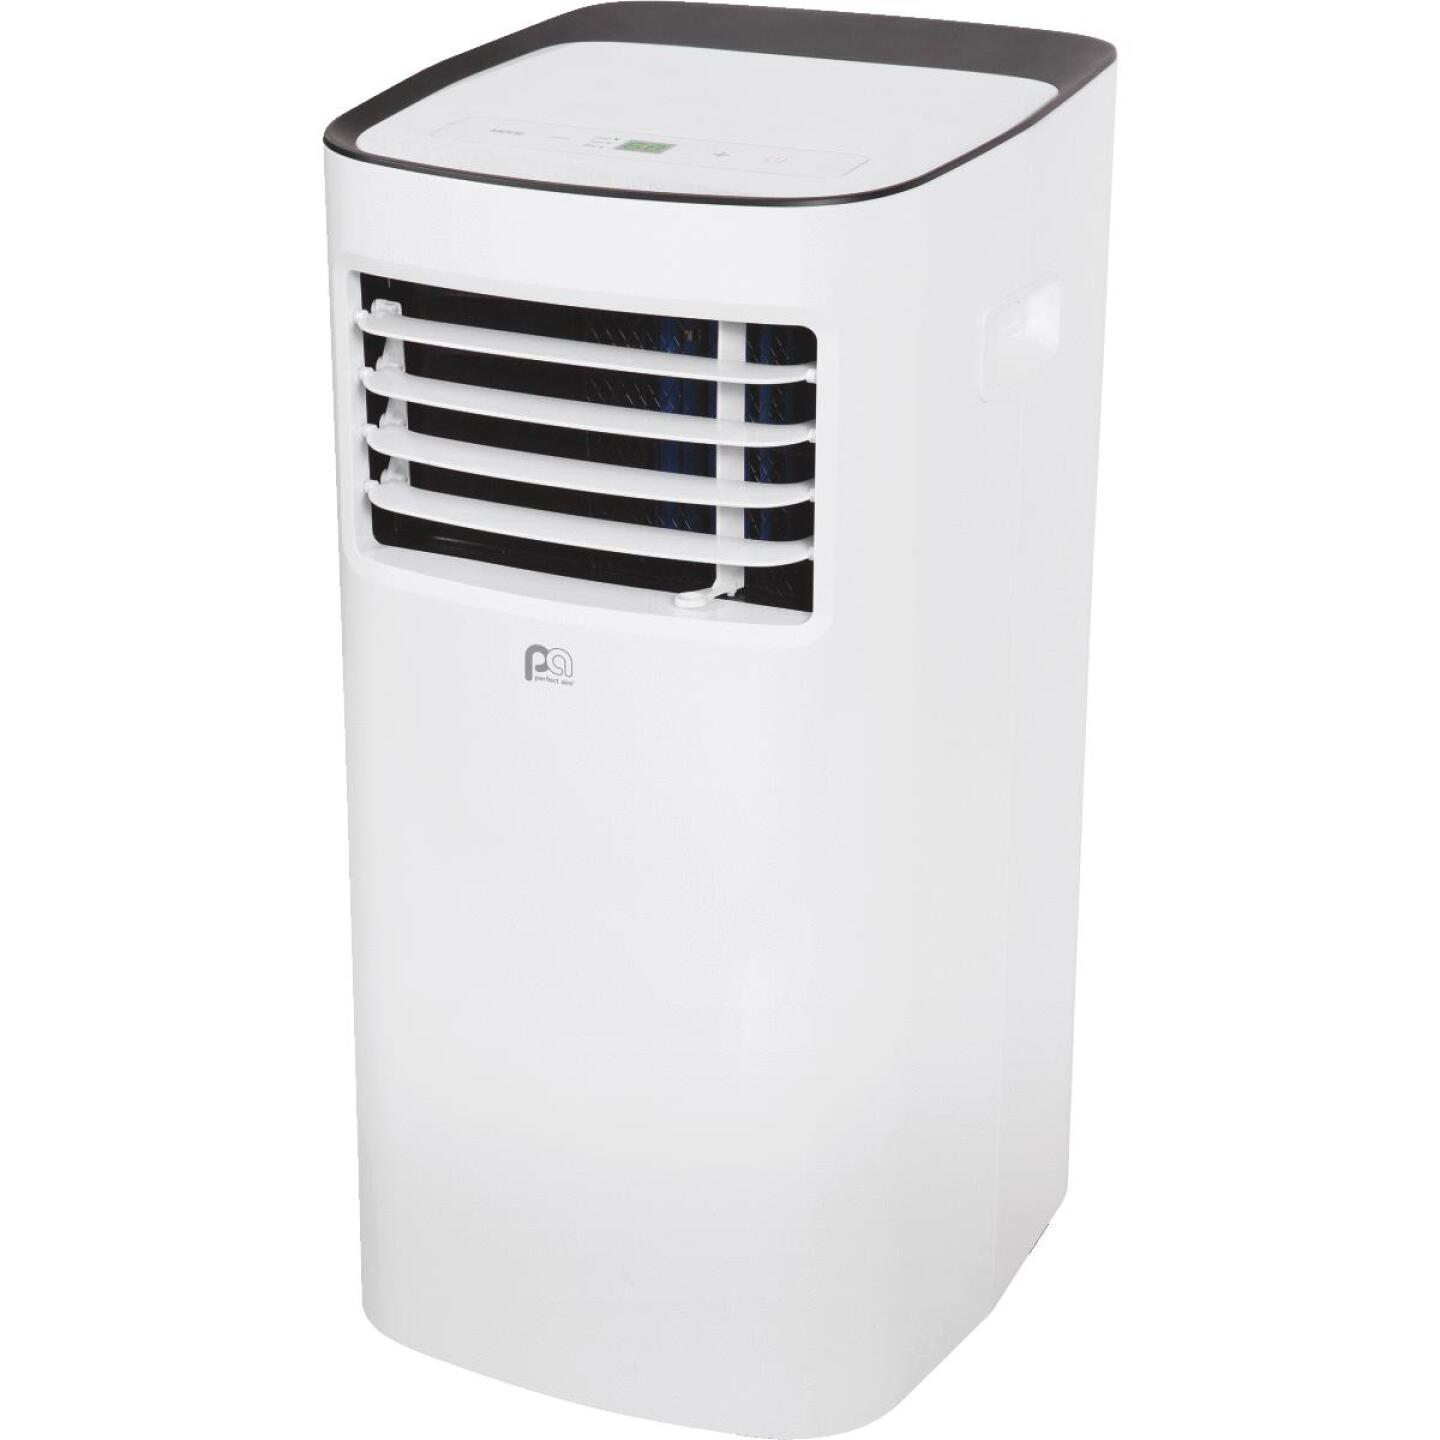 Perfect Aire 10,000 BTU 250 Sq. Ft. Portable Air Conditioner Image 1